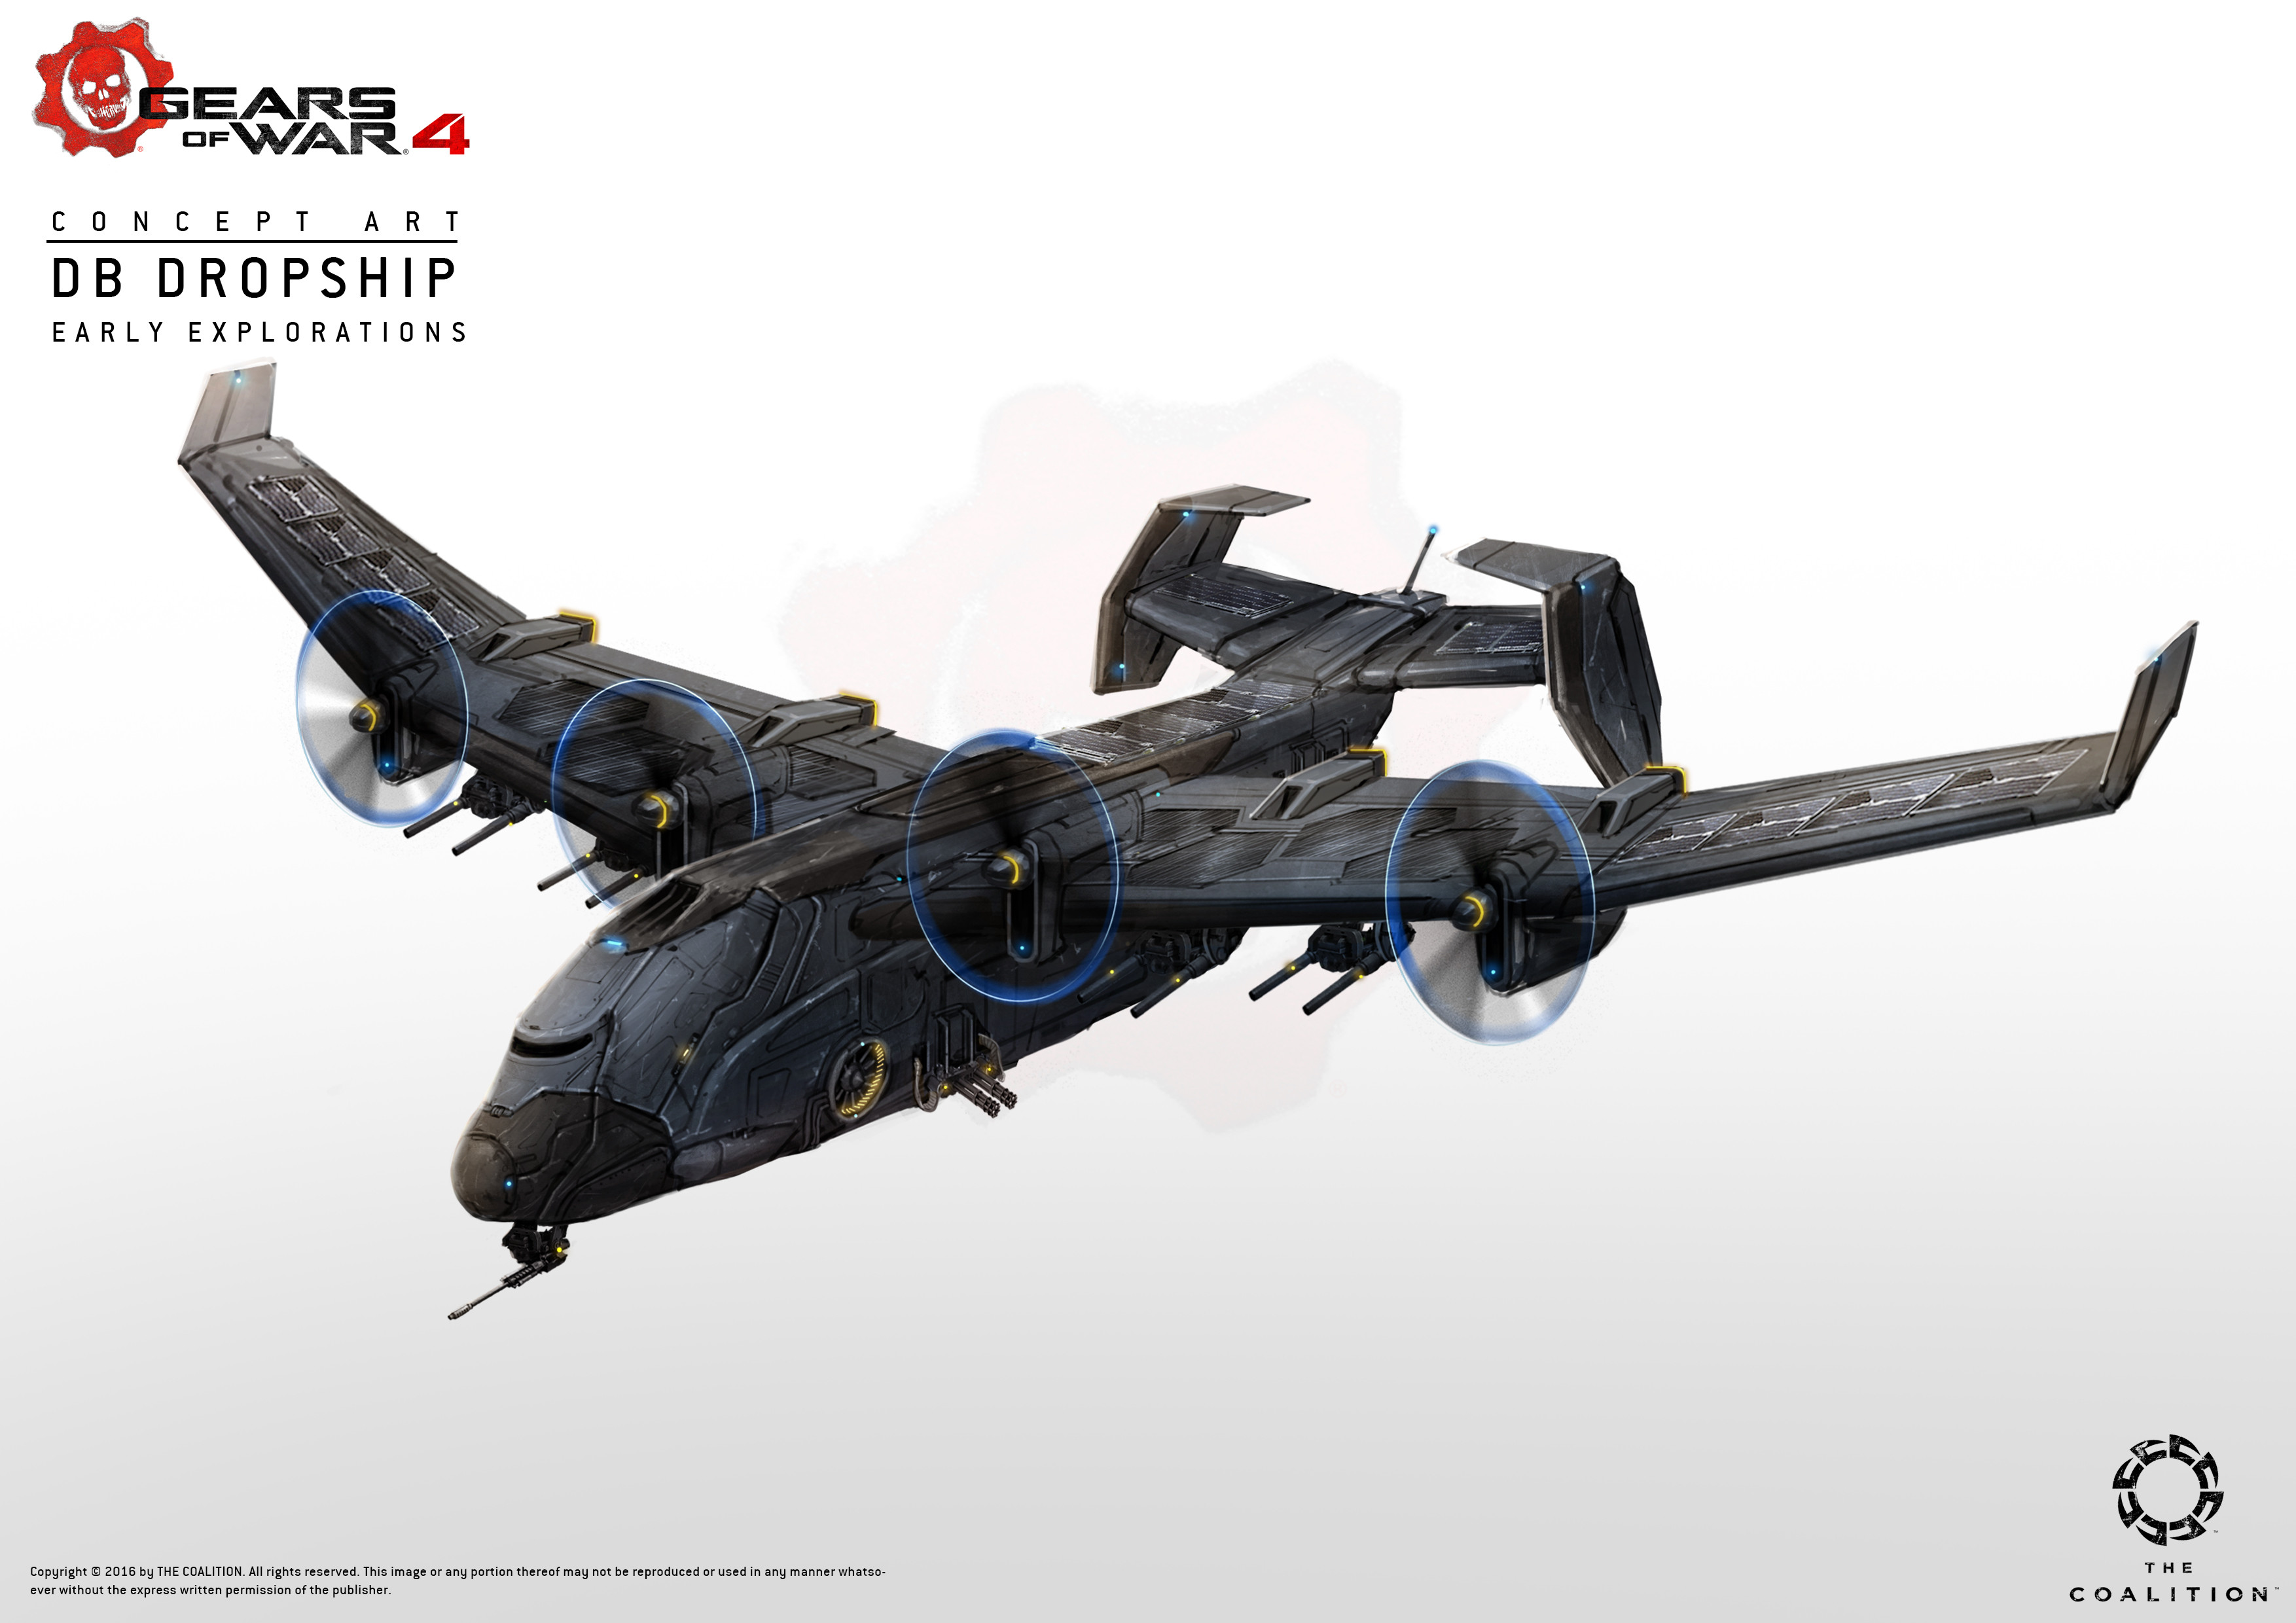 Early explorations for the vulture dropship, i think they went on to model this right away after some internal tweaks